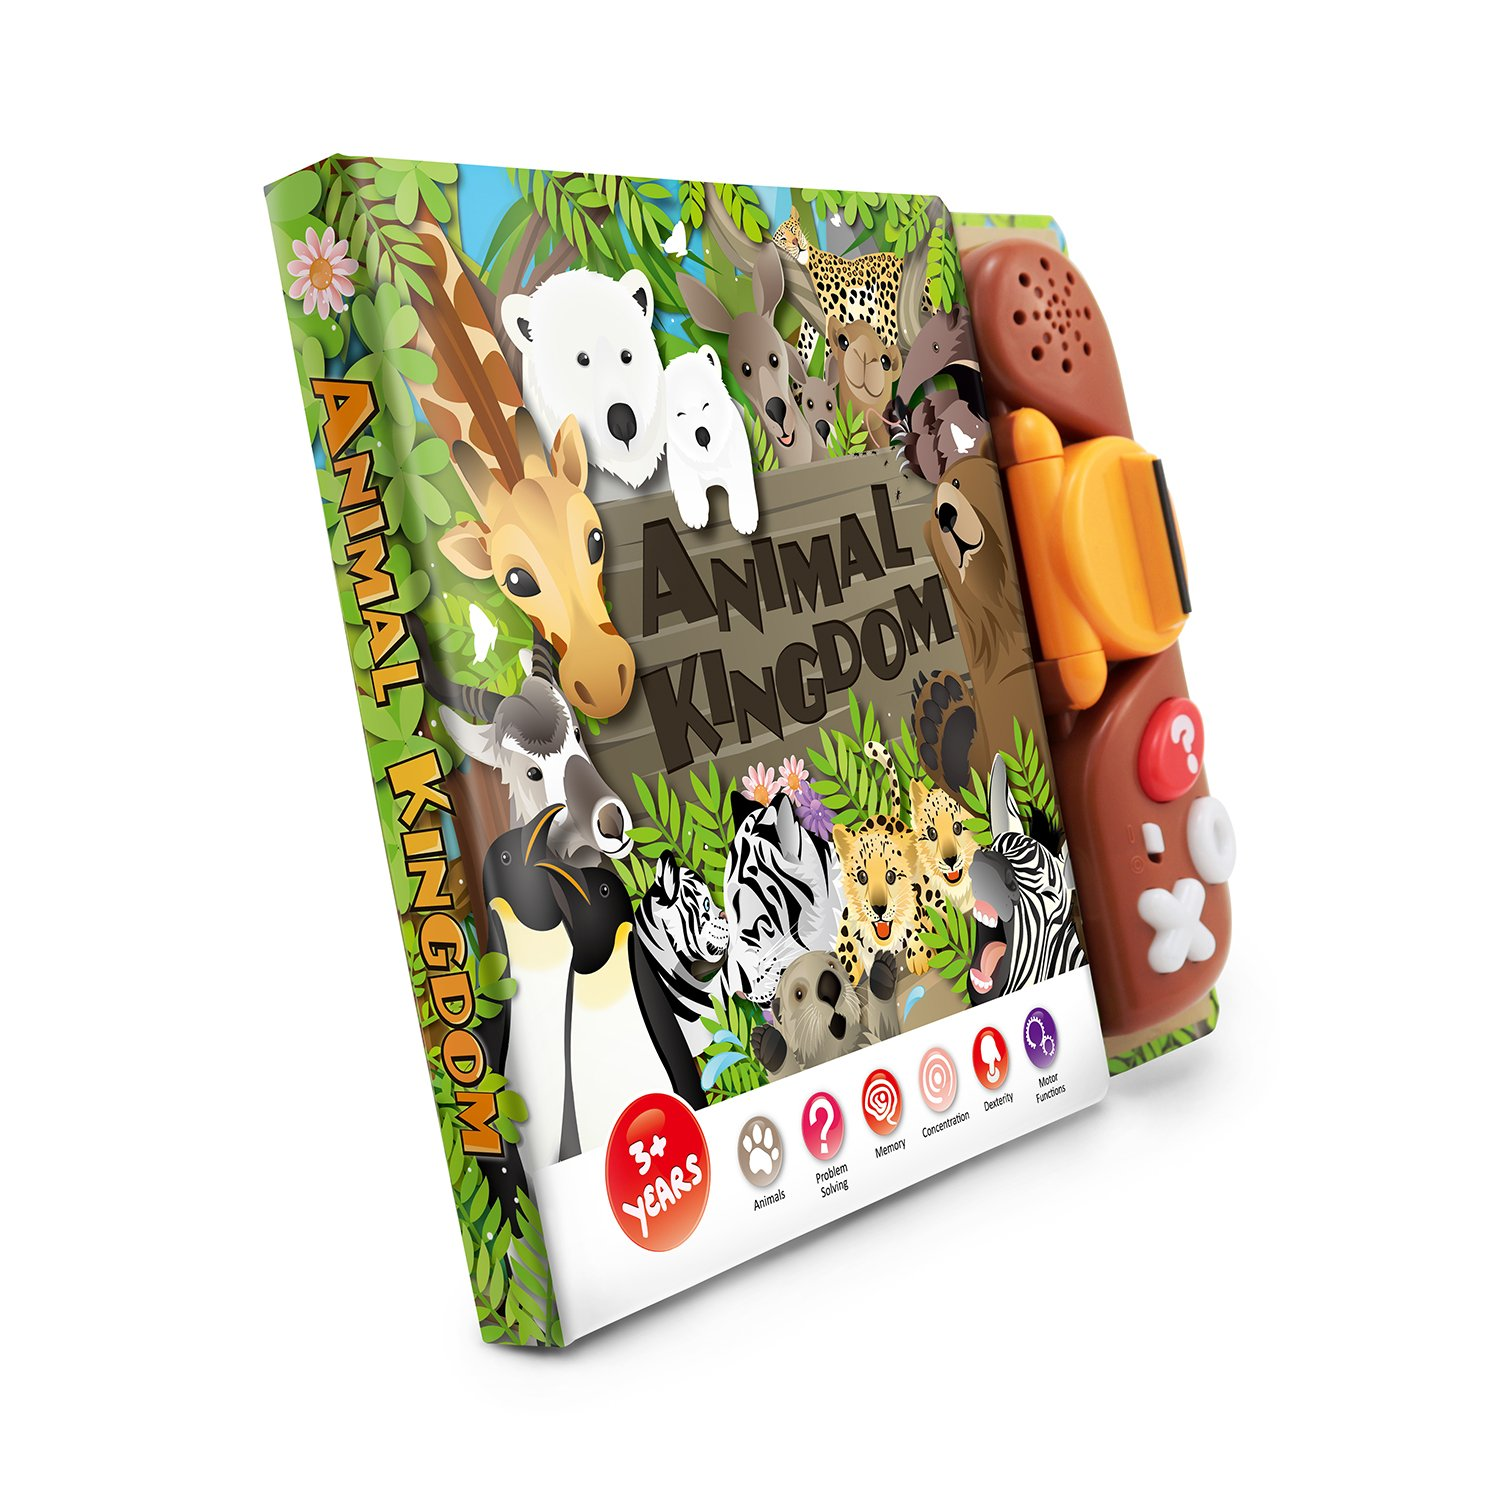 BEST LEARNING Book Reader Animal Kingdom - Educational Talking Sound Toy to Learn About Animals with Quiz Games for Kids Ages 3 to 8 Years Old by BEST LEARNING (Image #8)